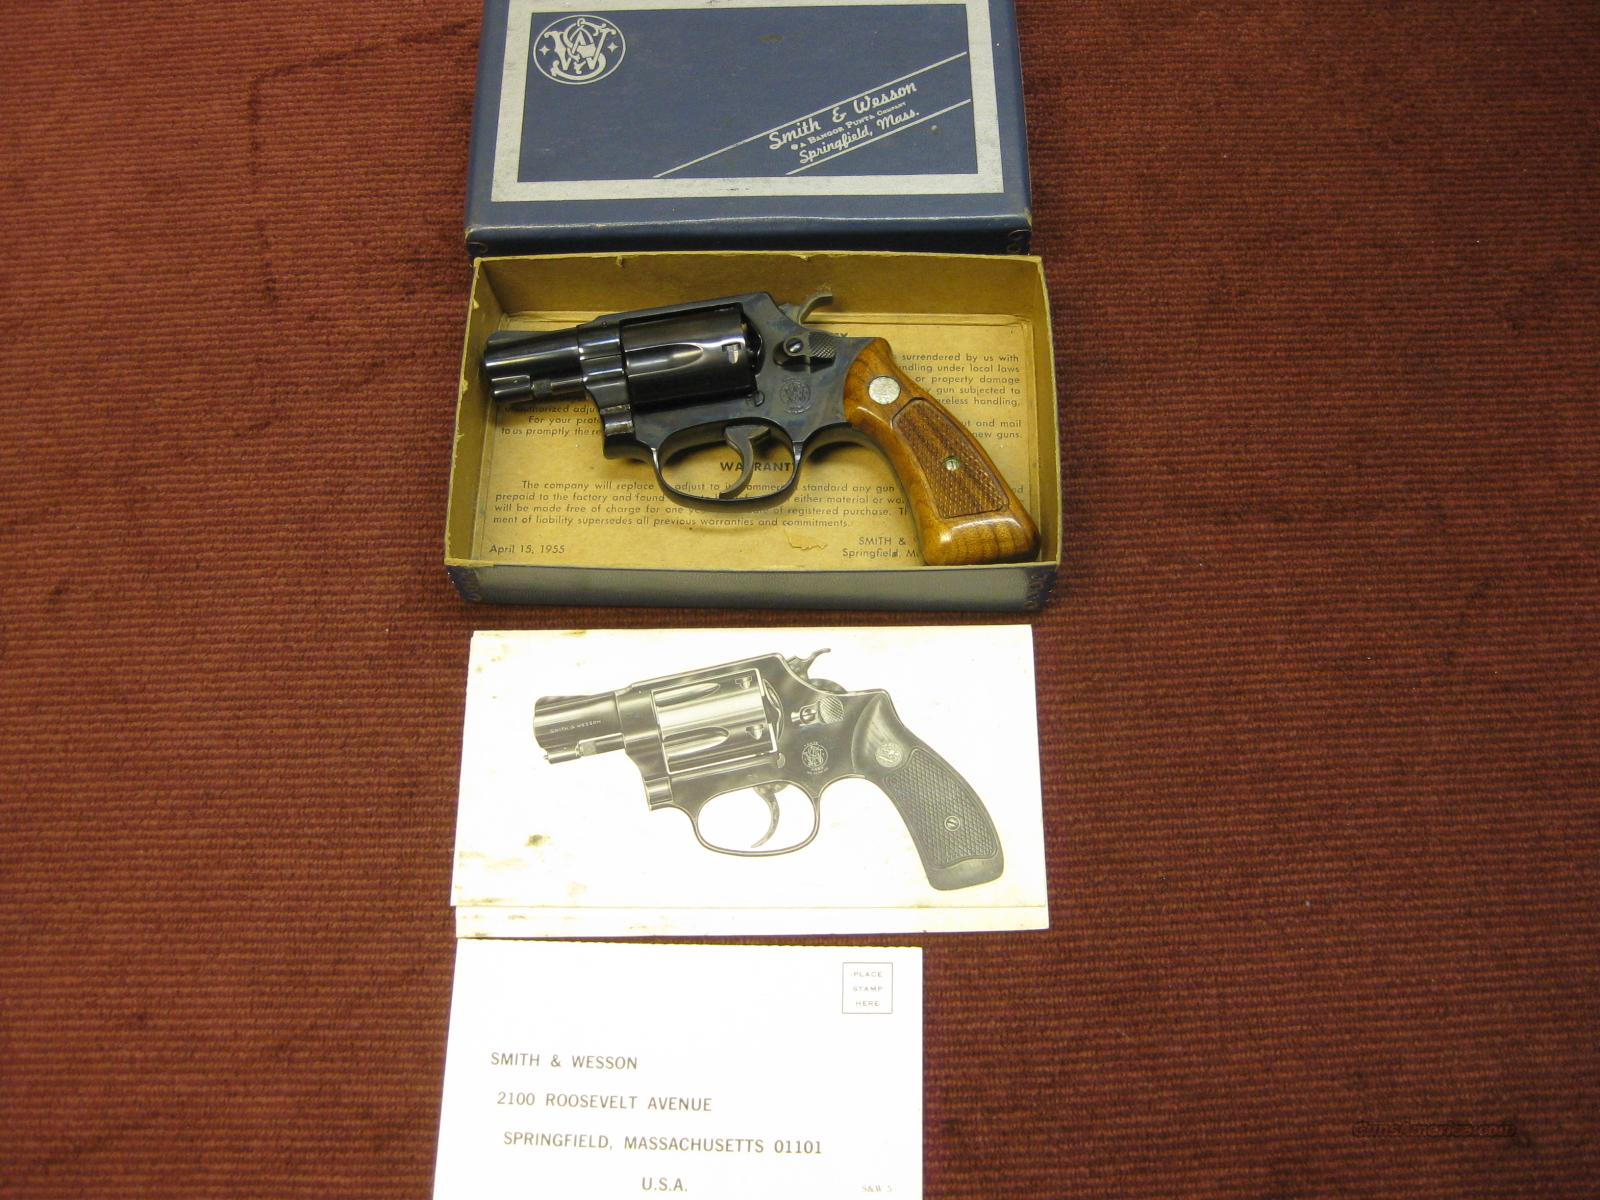 SMITH & WESSON MODEL 36 (NO DASH) MADE IN 1969 - AS NEW IN BOX !  Guns > Pistols > Smith & Wesson Revolvers > Pocket Pistols